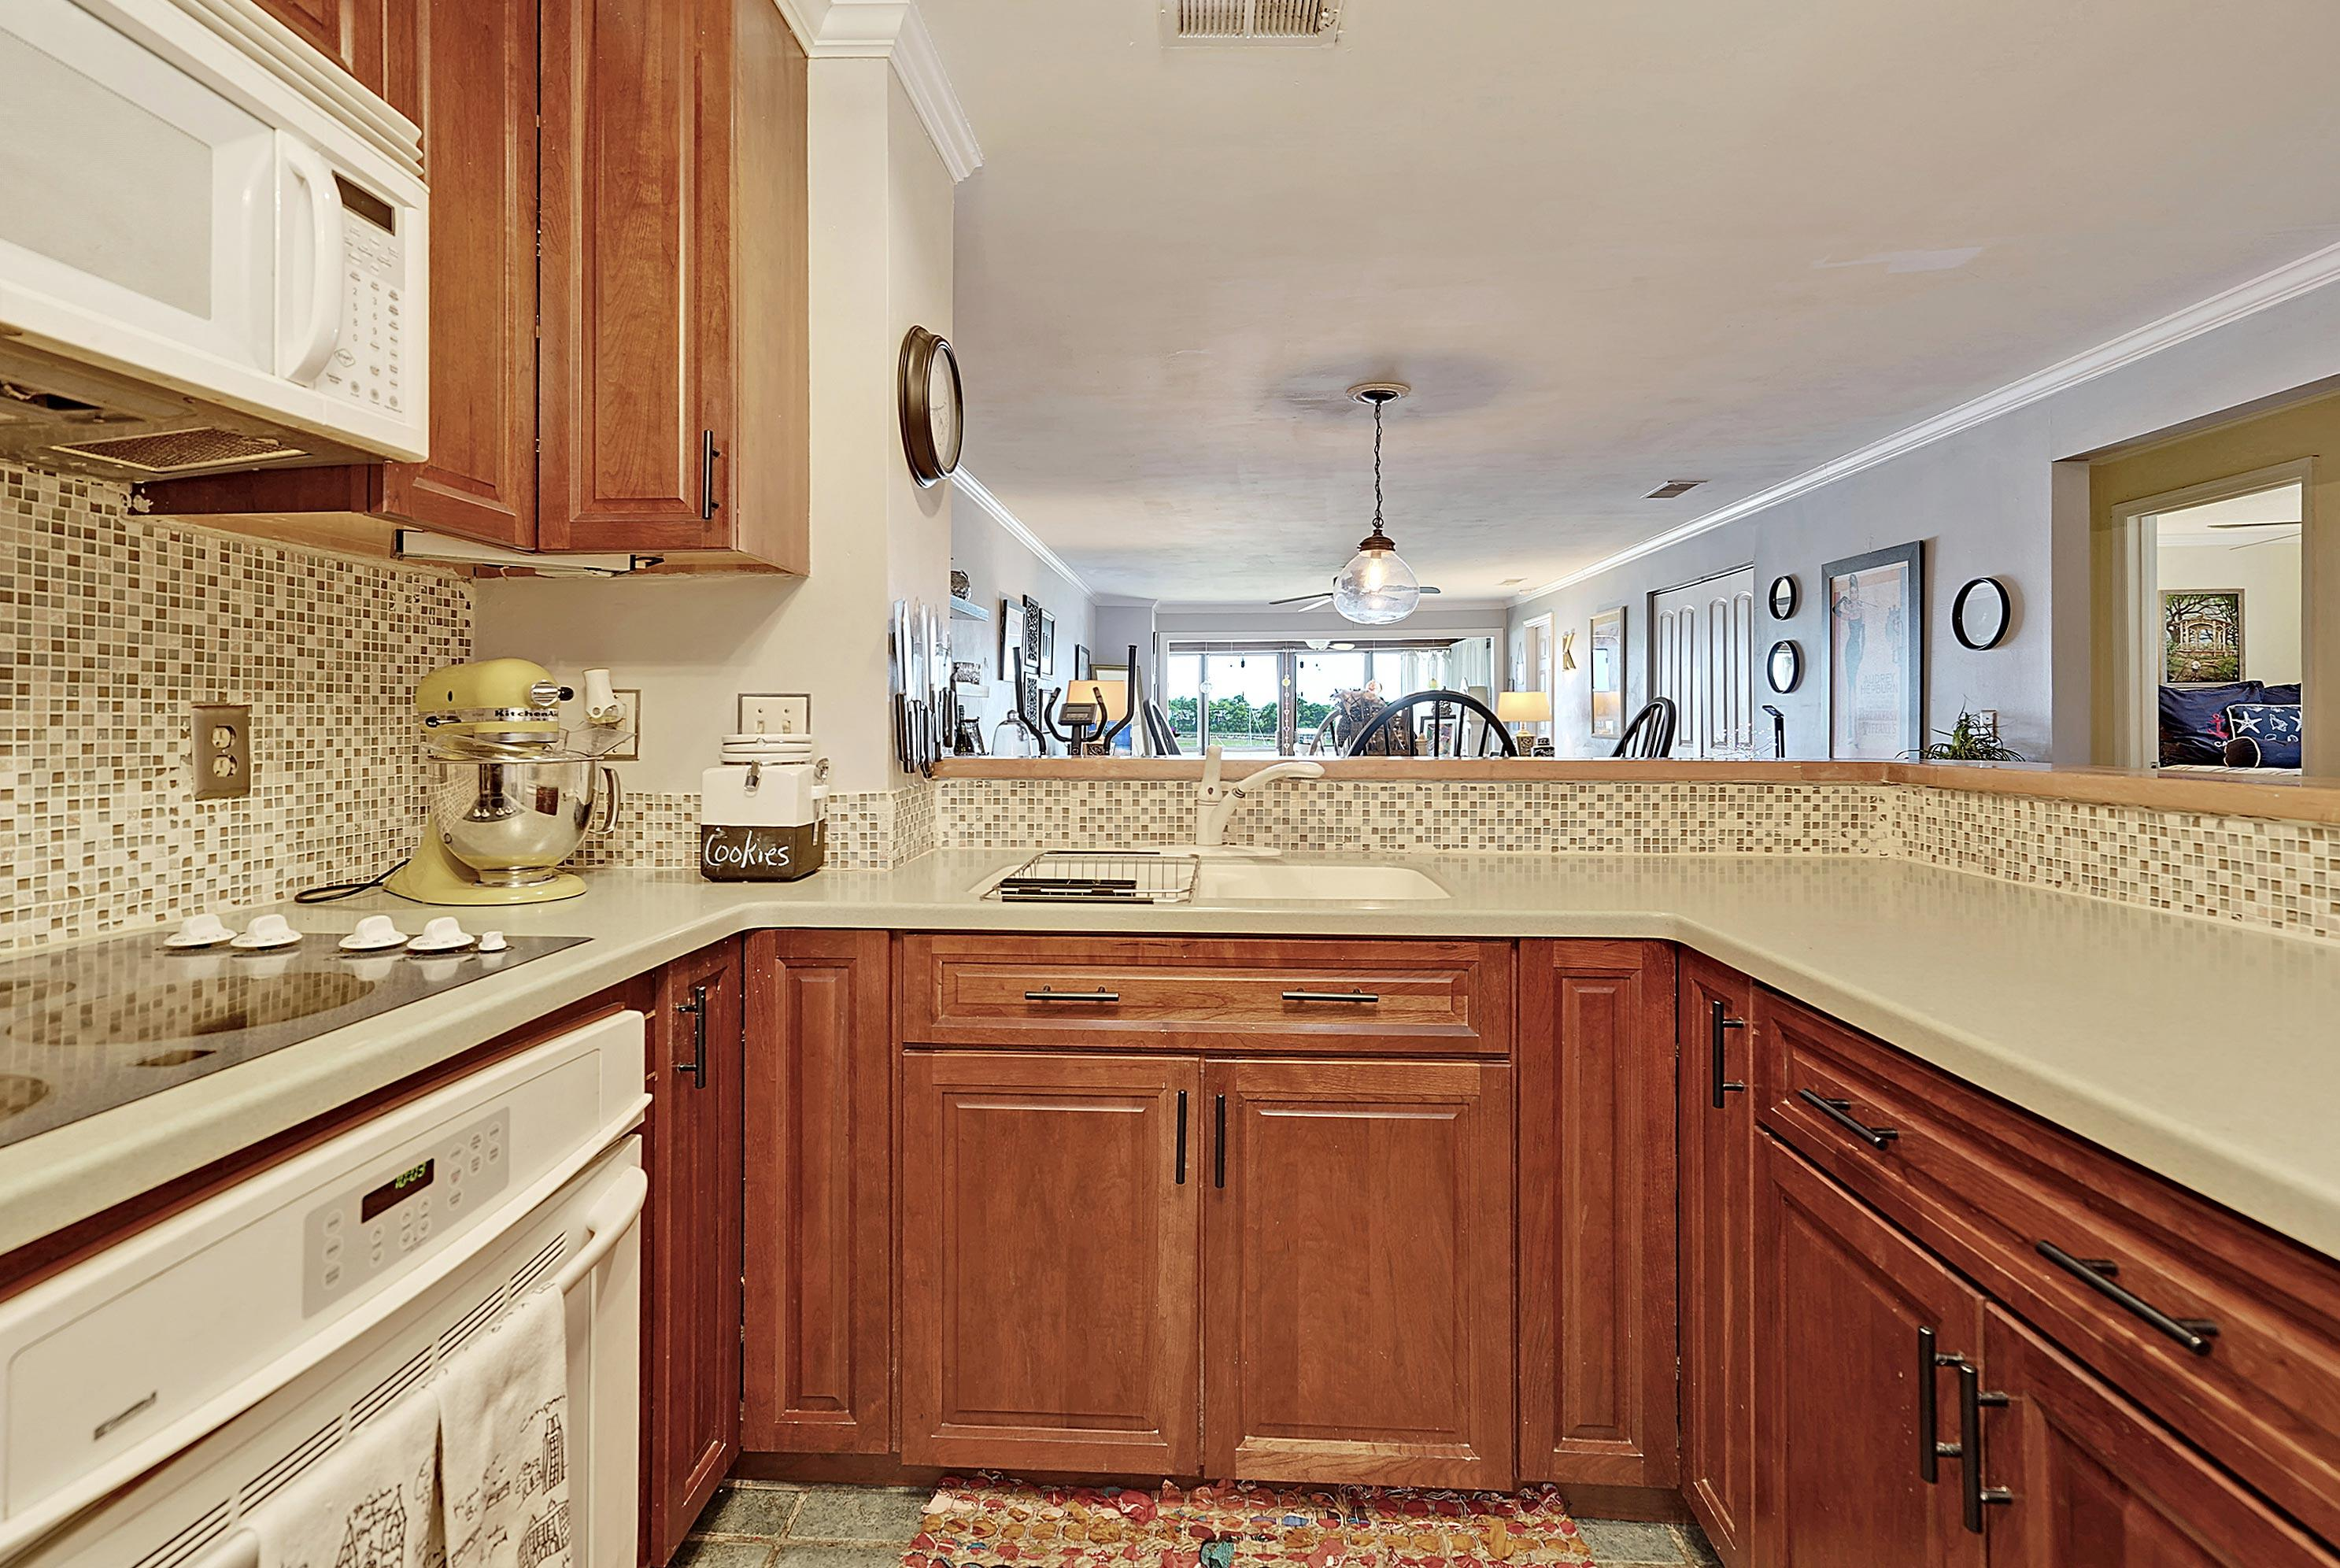 Mariners Cay Homes For Sale - 63 Mariners Cay, Folly Beach, SC - 31